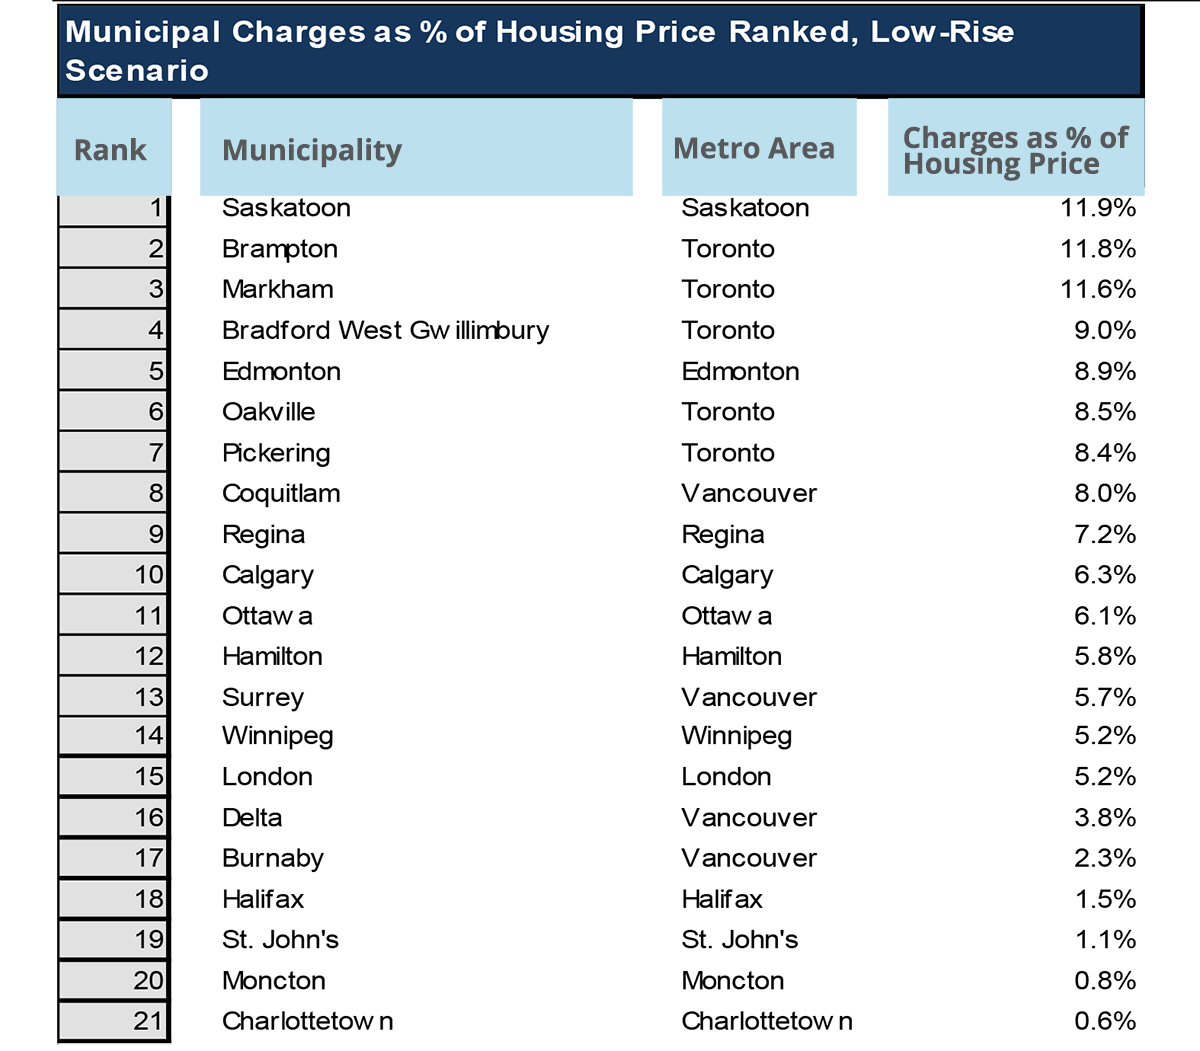 Municipal Charges as Percentage of Housing Price - Table